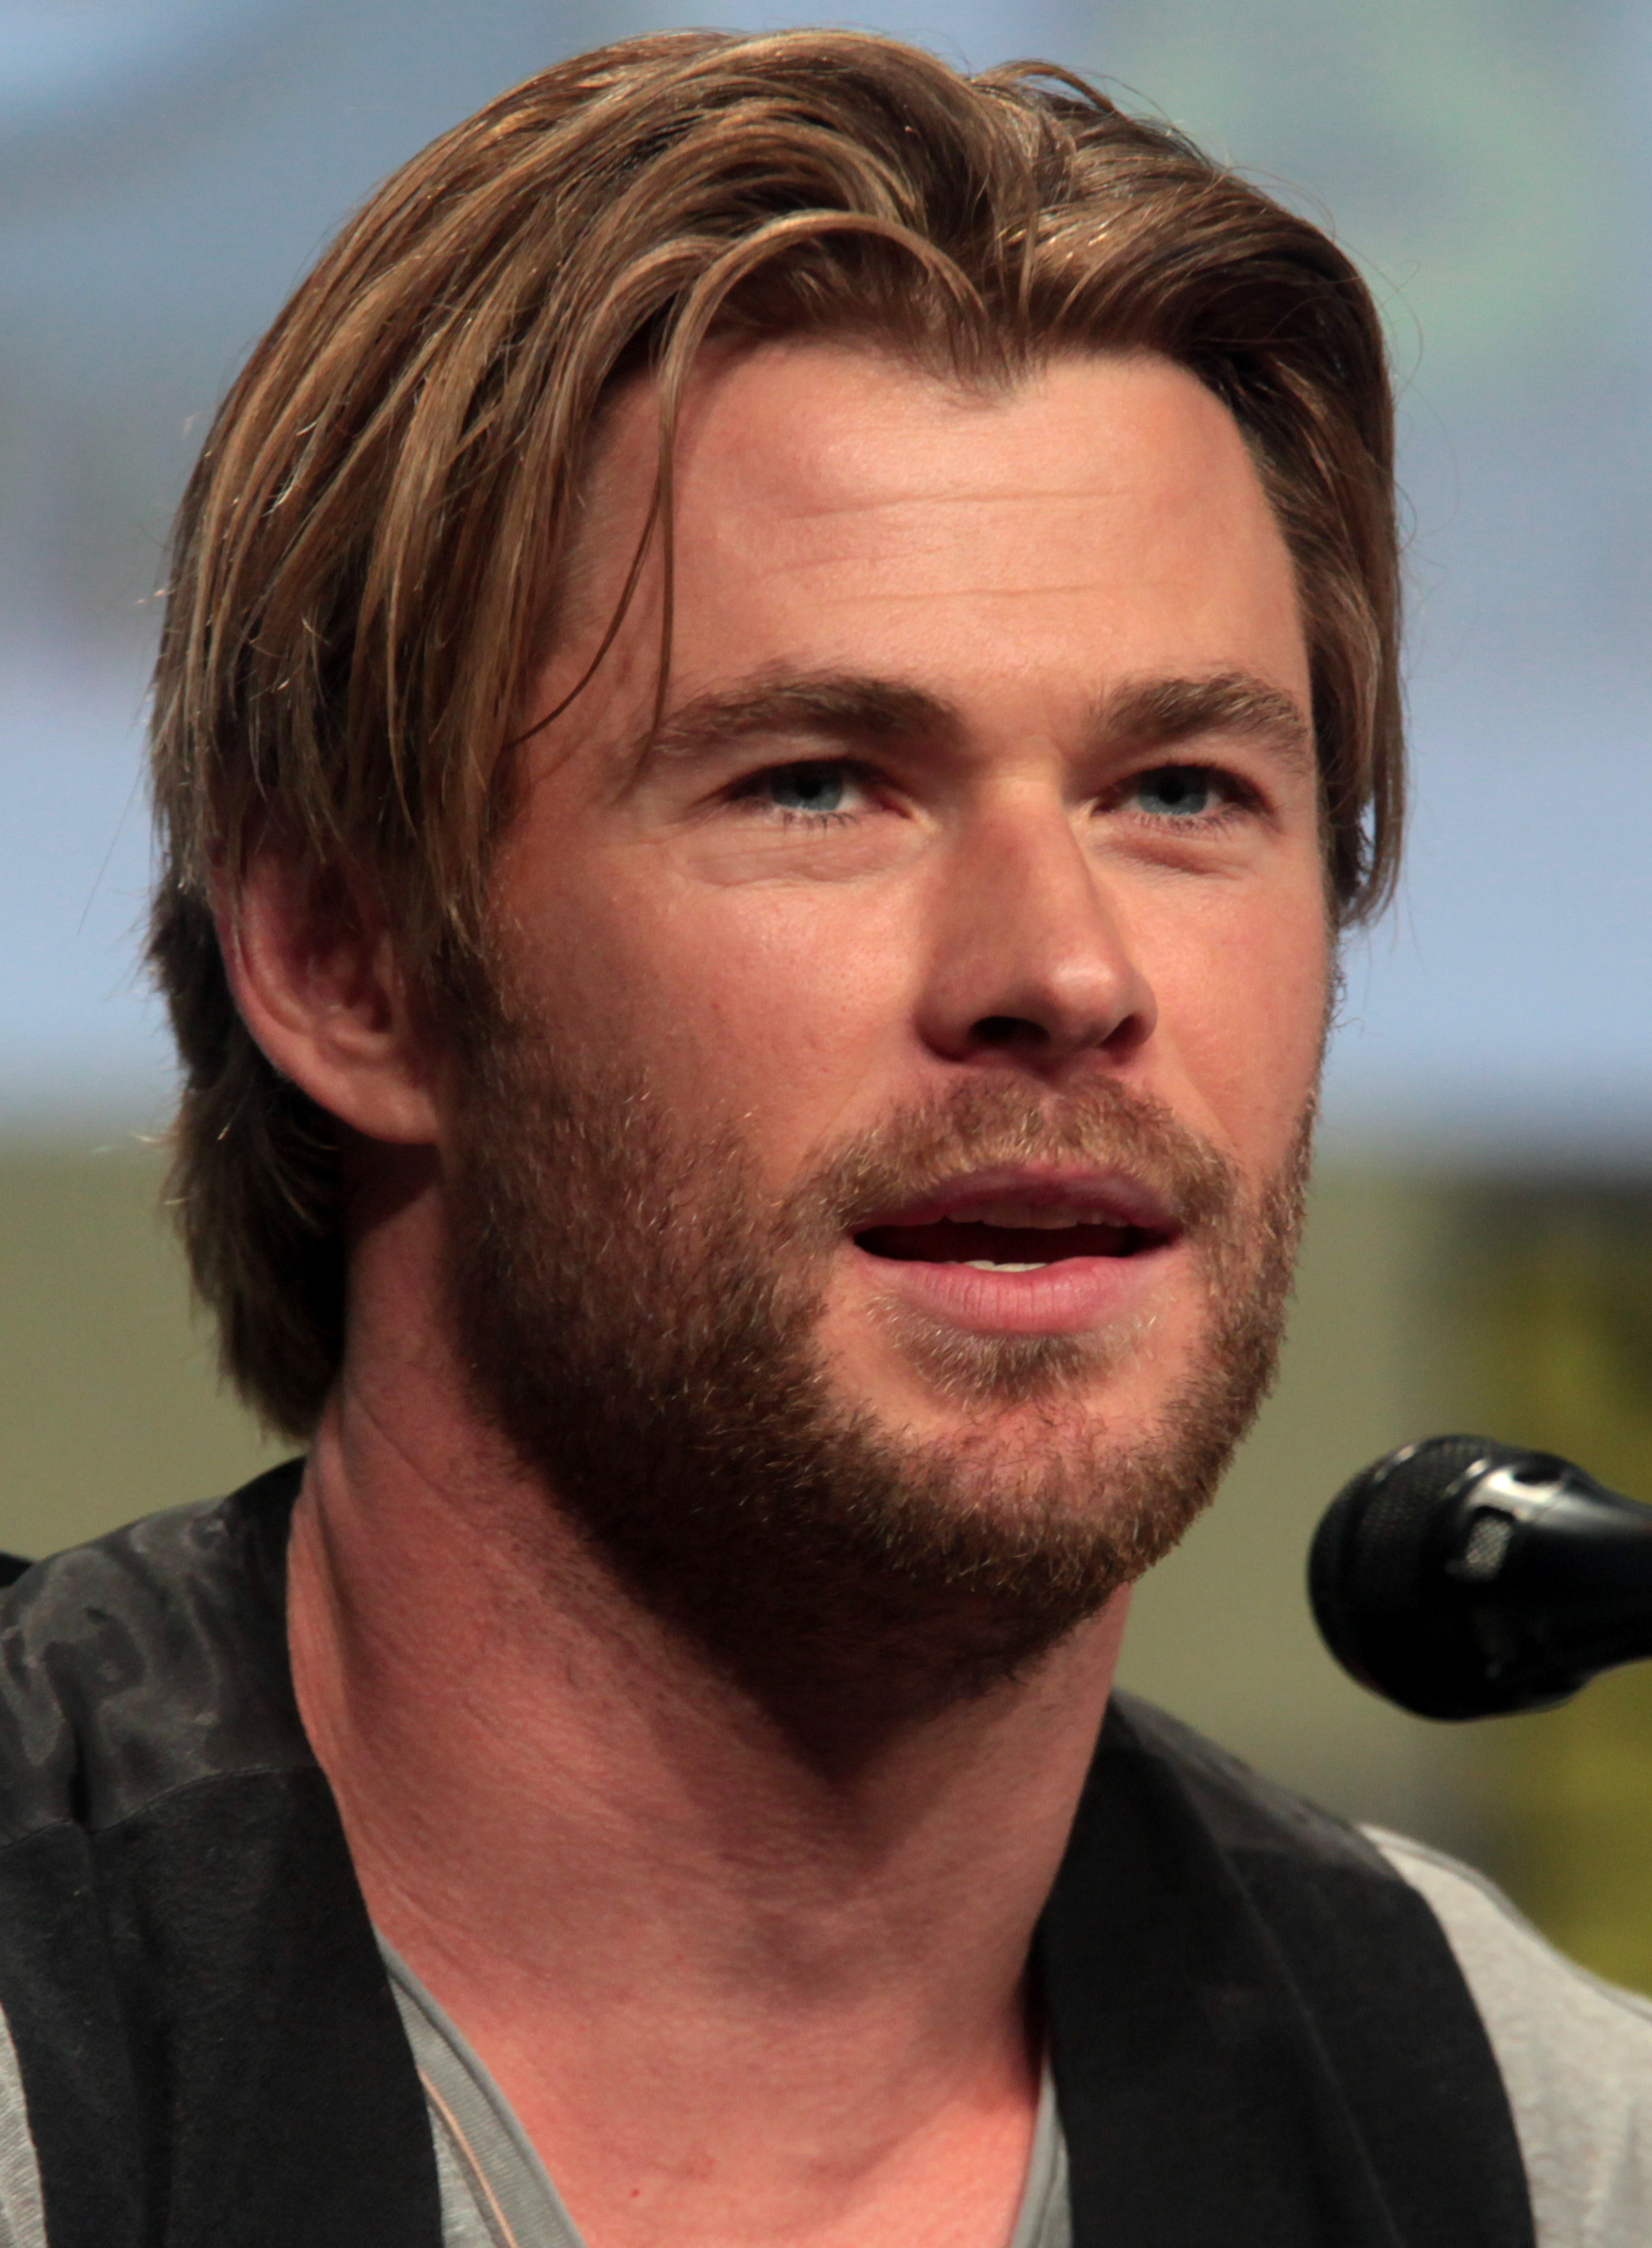 File:Chris Hemsworth SDCC 2014 (cropped).jpg - Wikimedia Commons